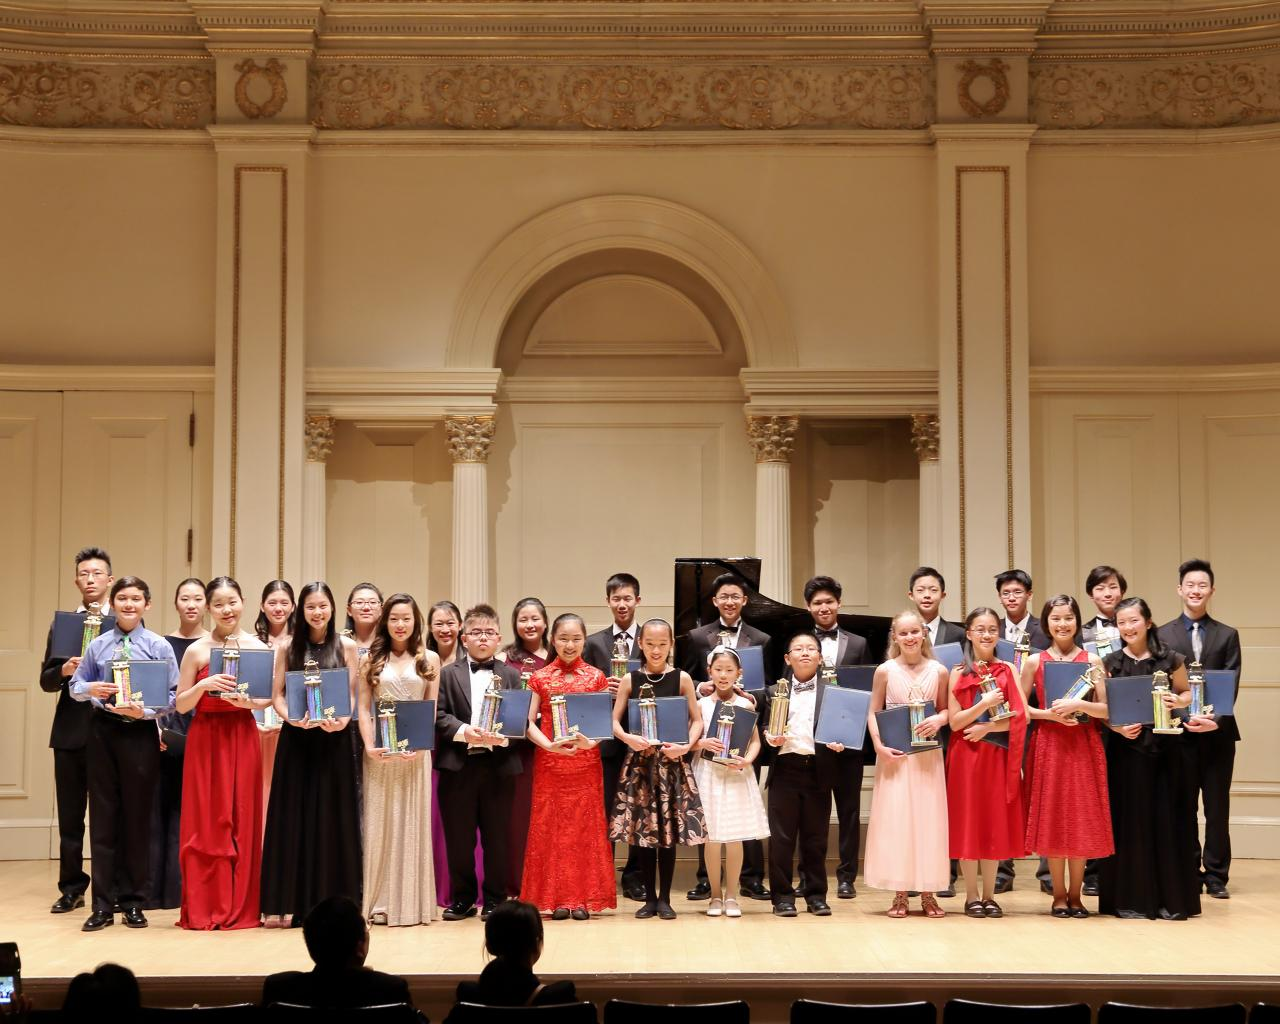 2016 2 Group_-_The_Grand_Winners_at_Carnegie_Hall_April_24_2016_01fmc.116171706_large.jpg